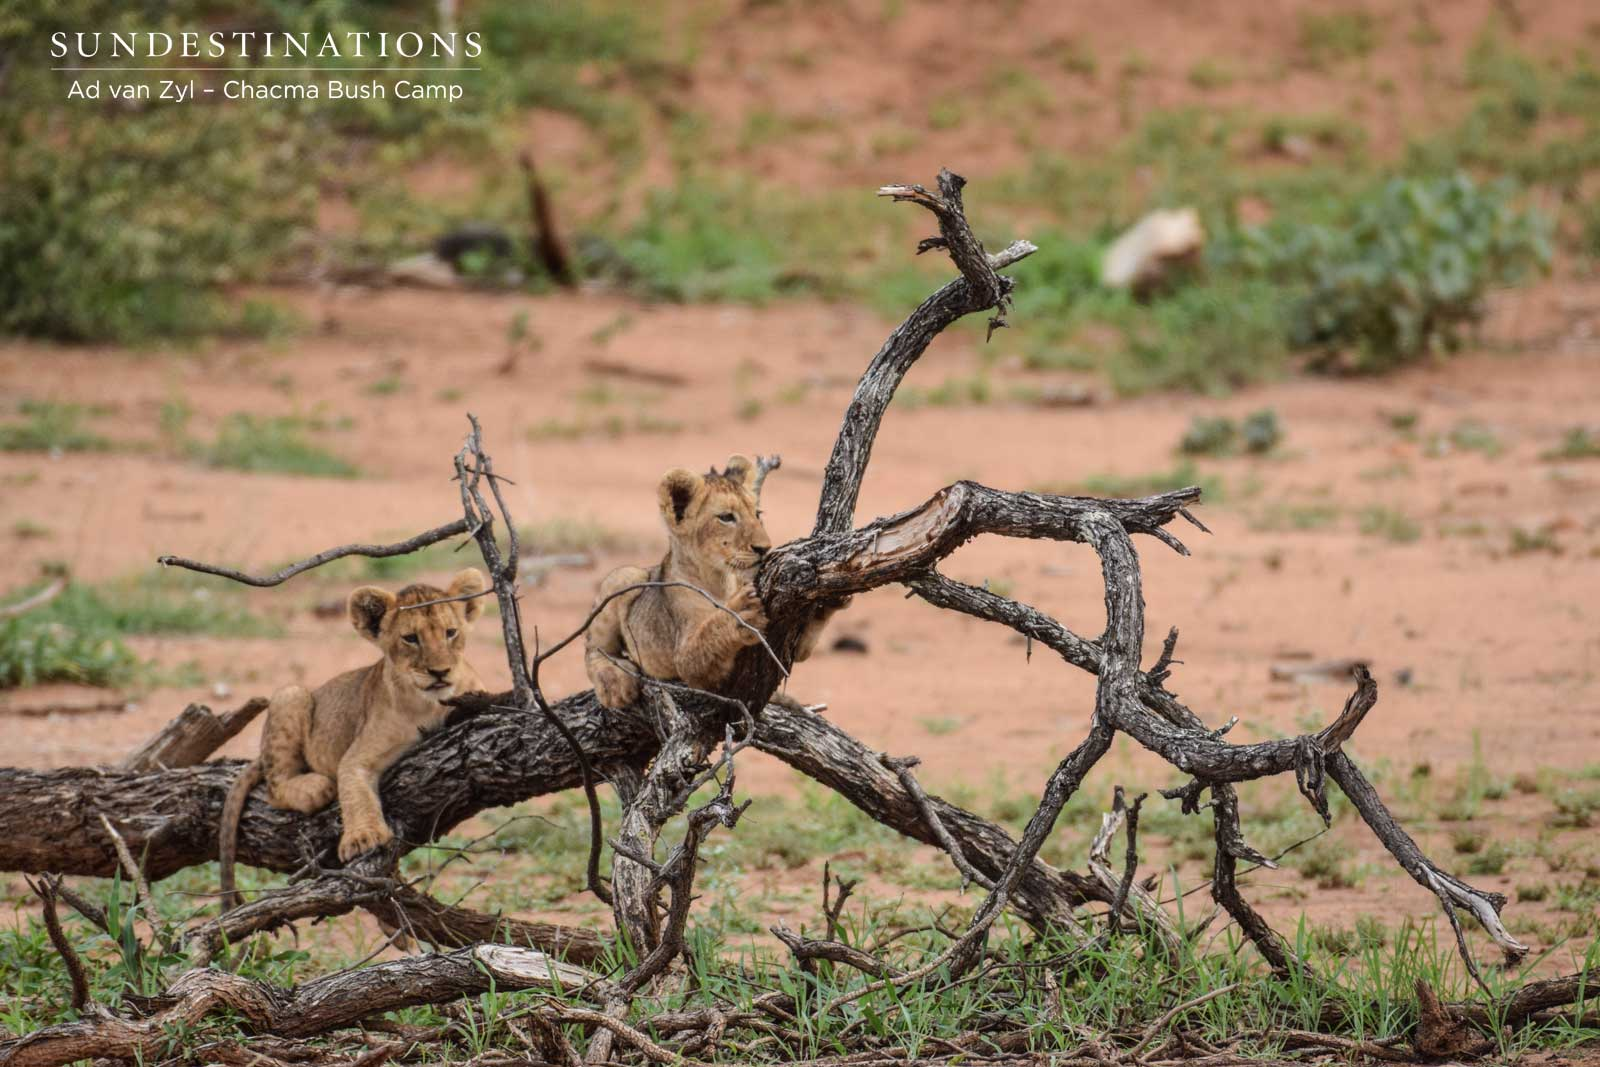 Lion Cubs at Chacma Bush Camp